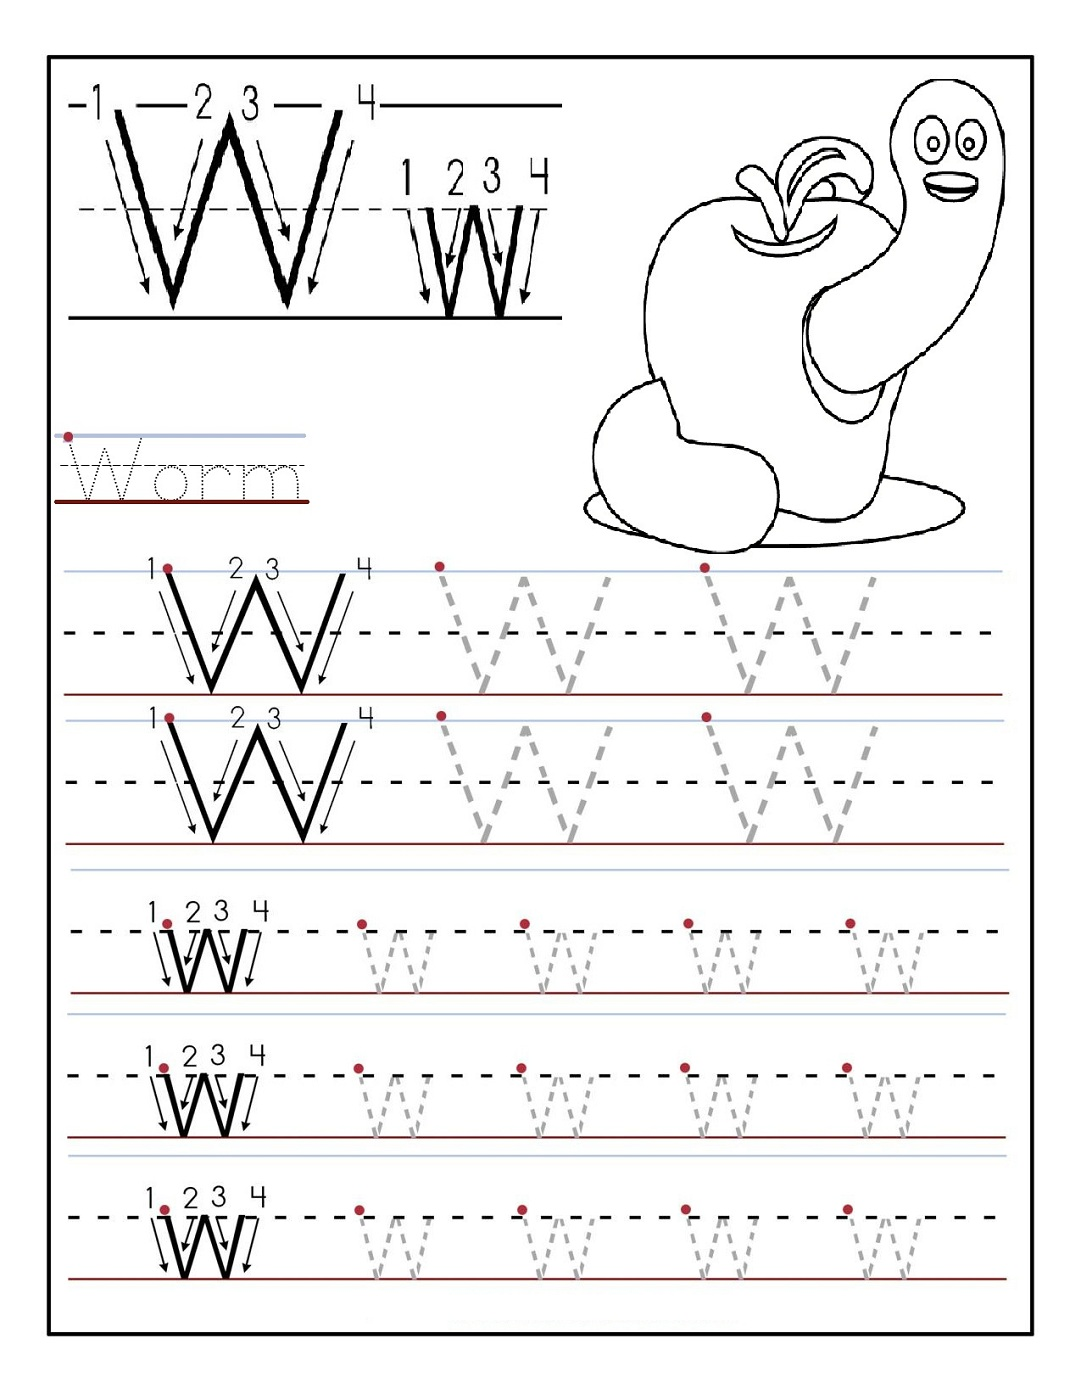 Abc Worksheets For Kindergarten Printables : Kindergarten alphabet worksheets printable activity shelter